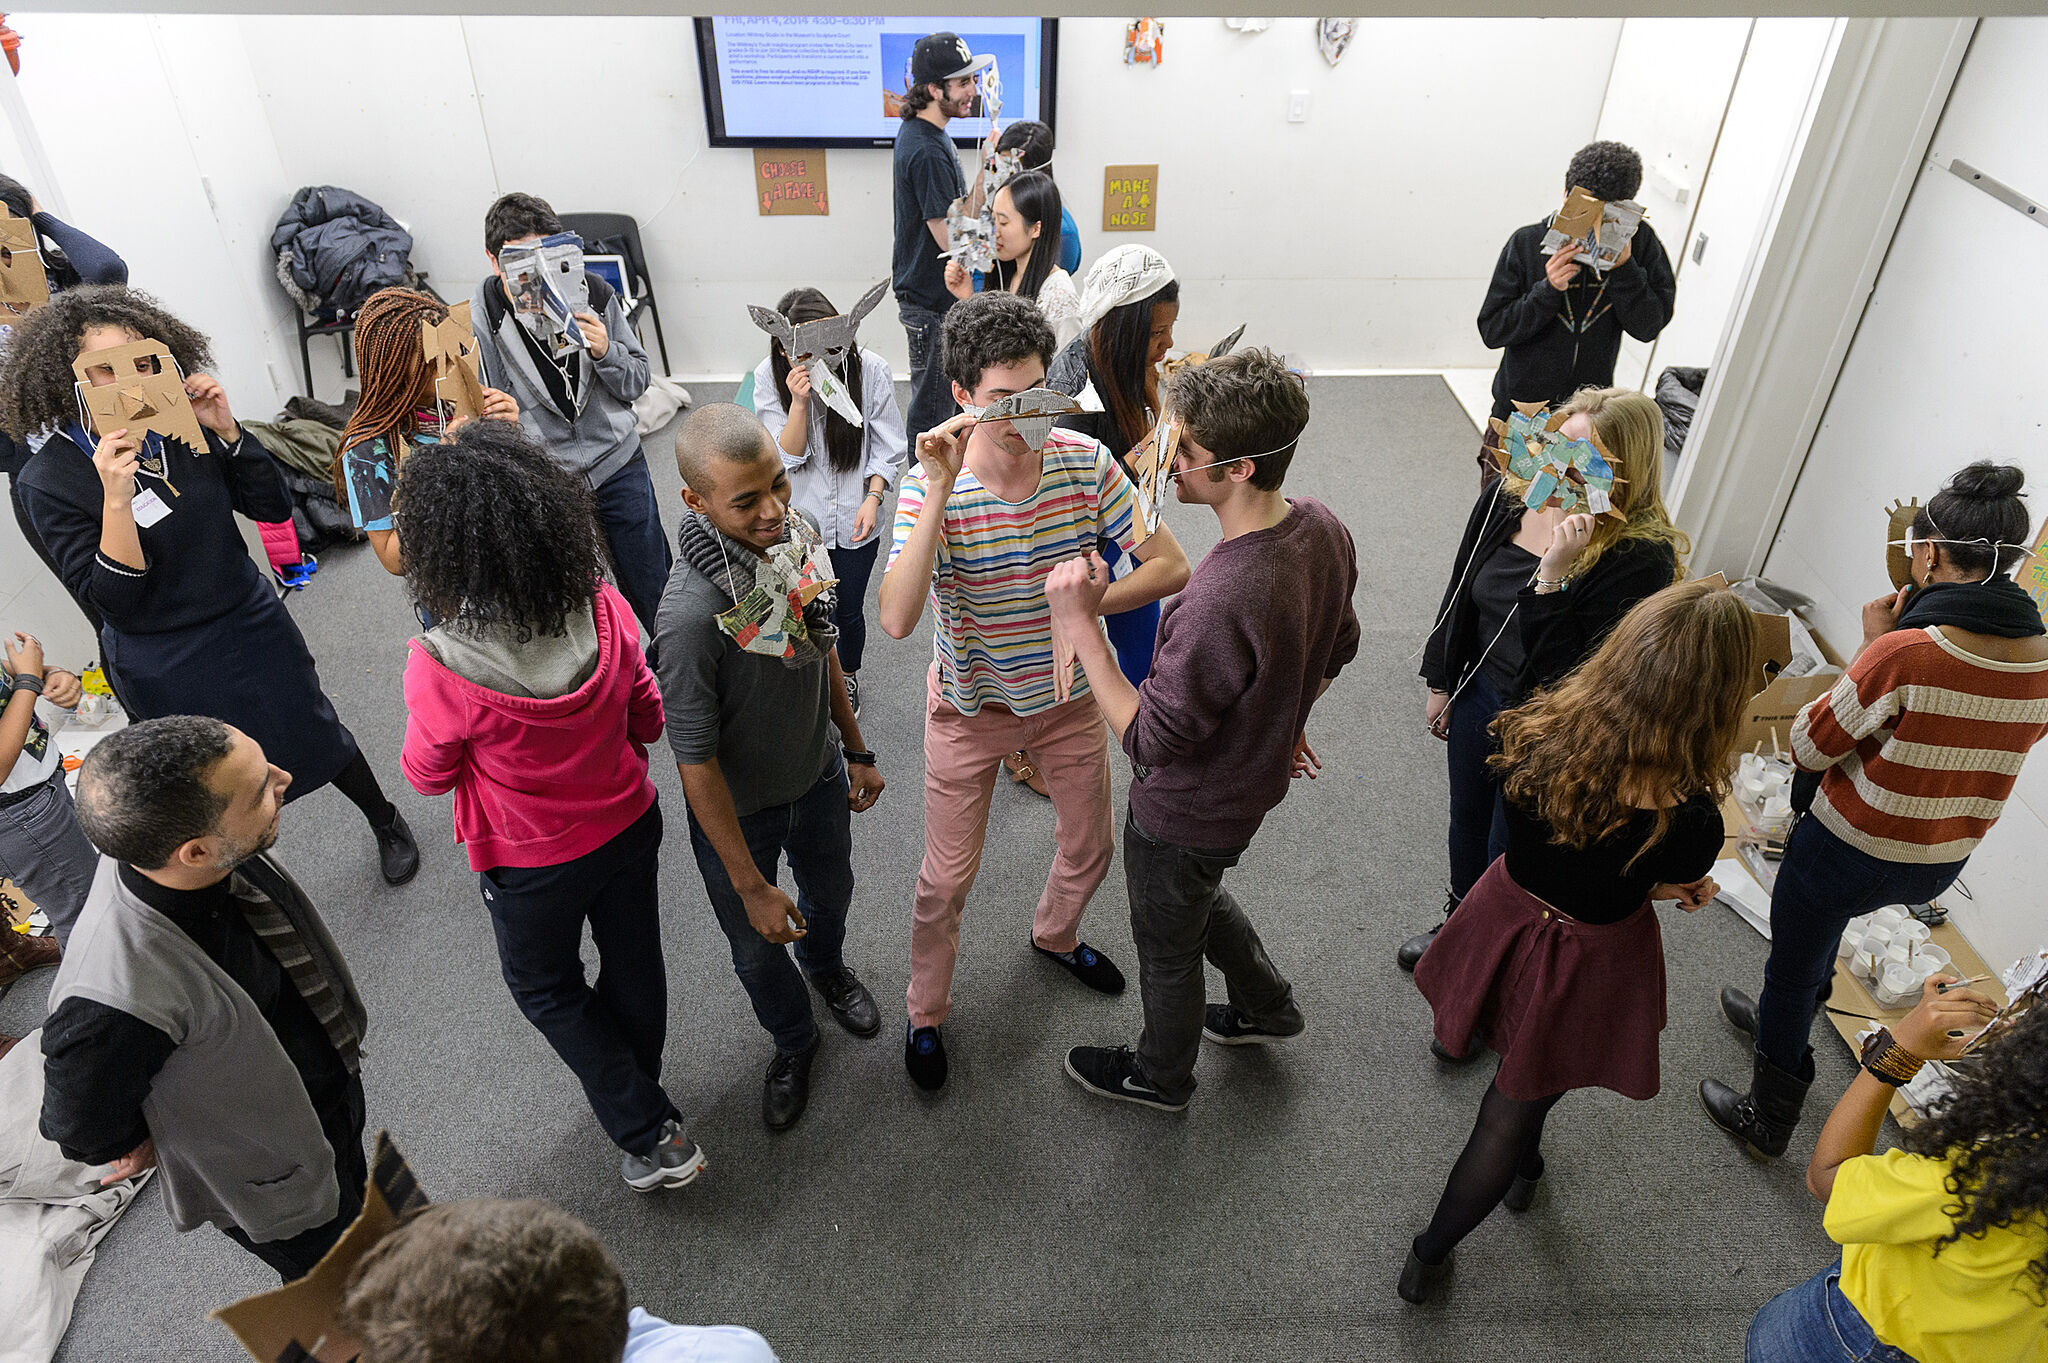 A group of students standing in the gallery.